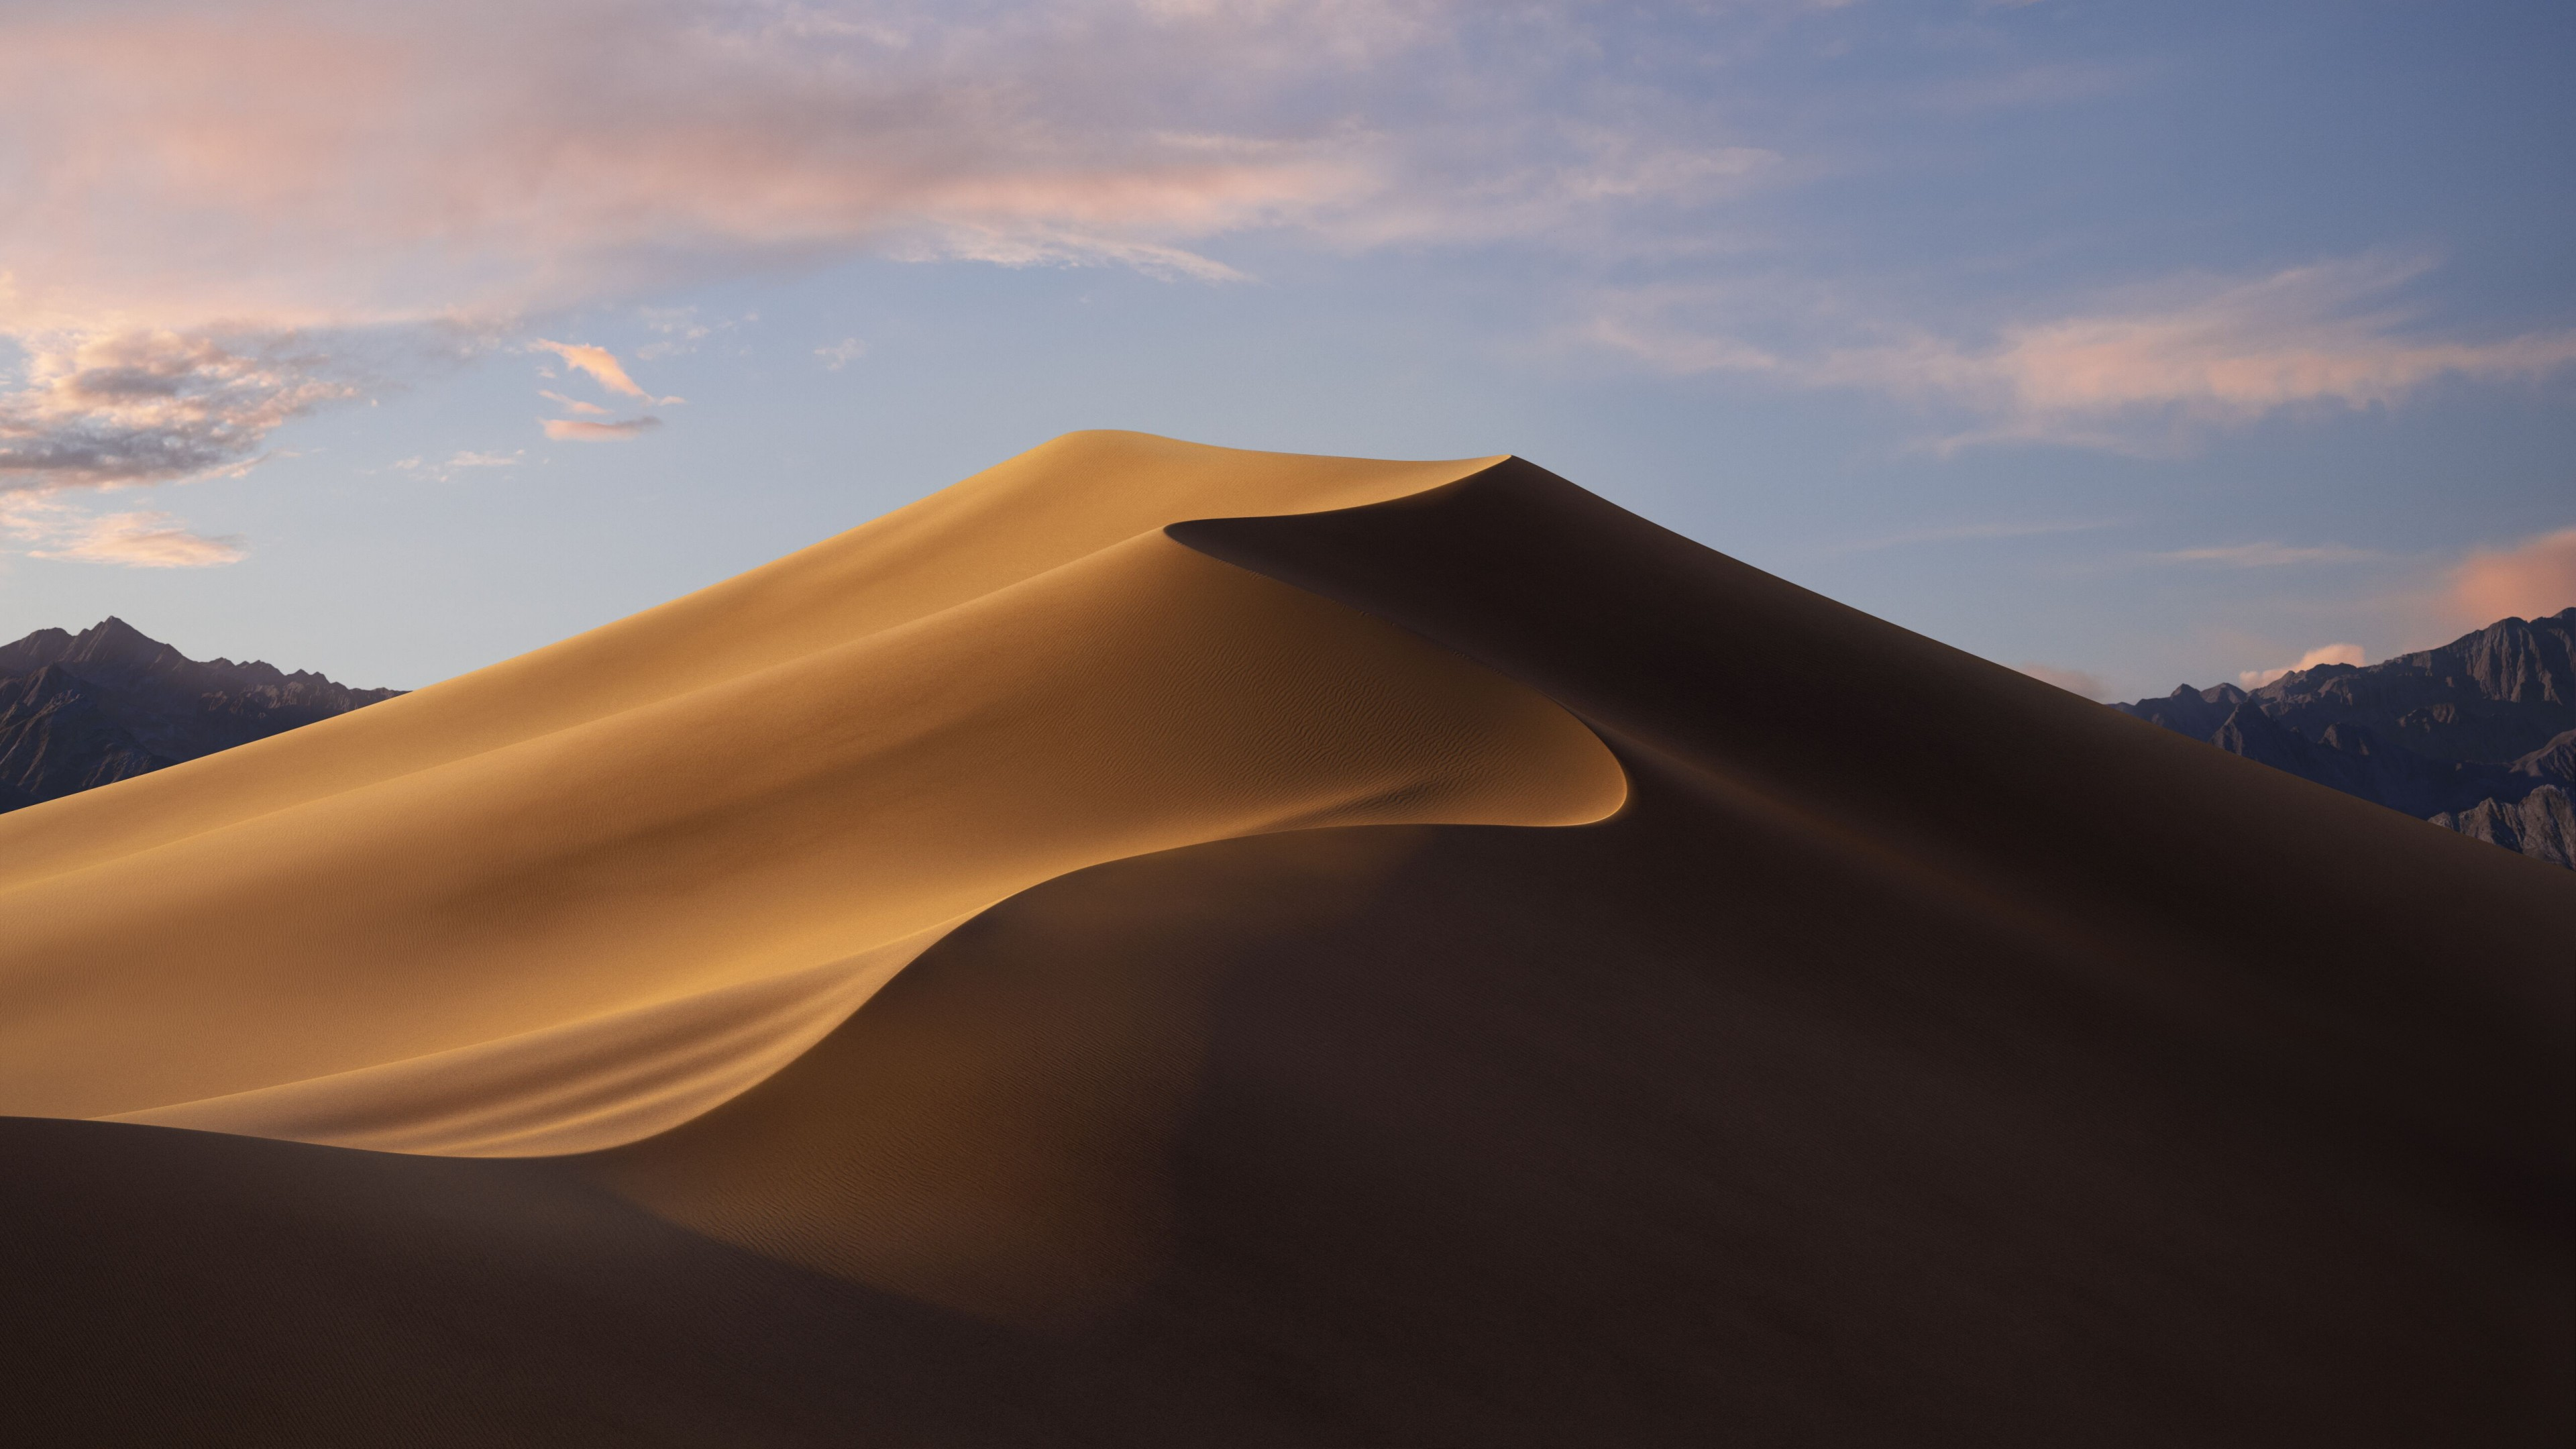 Wallpaper macOS Mojave, Day, Dunes, WWDC 2018, 5K, OS #18882